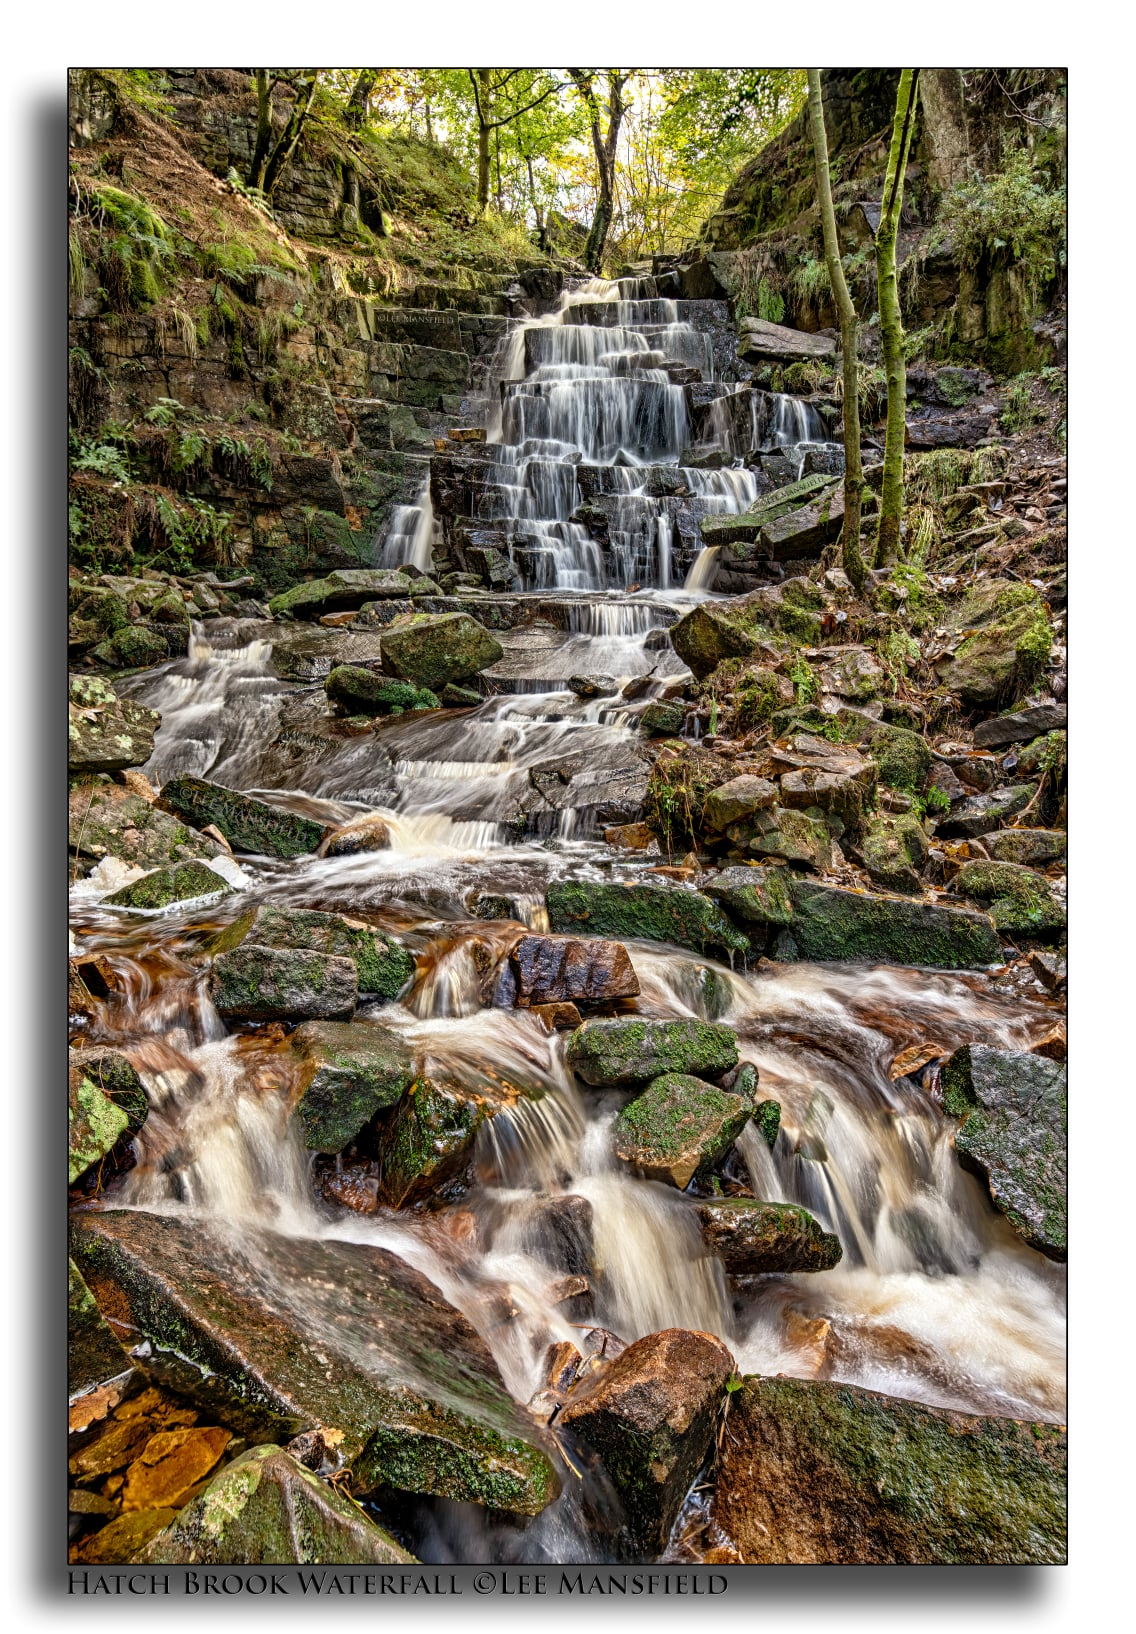 Hatch Brook Waterfall - Chorley